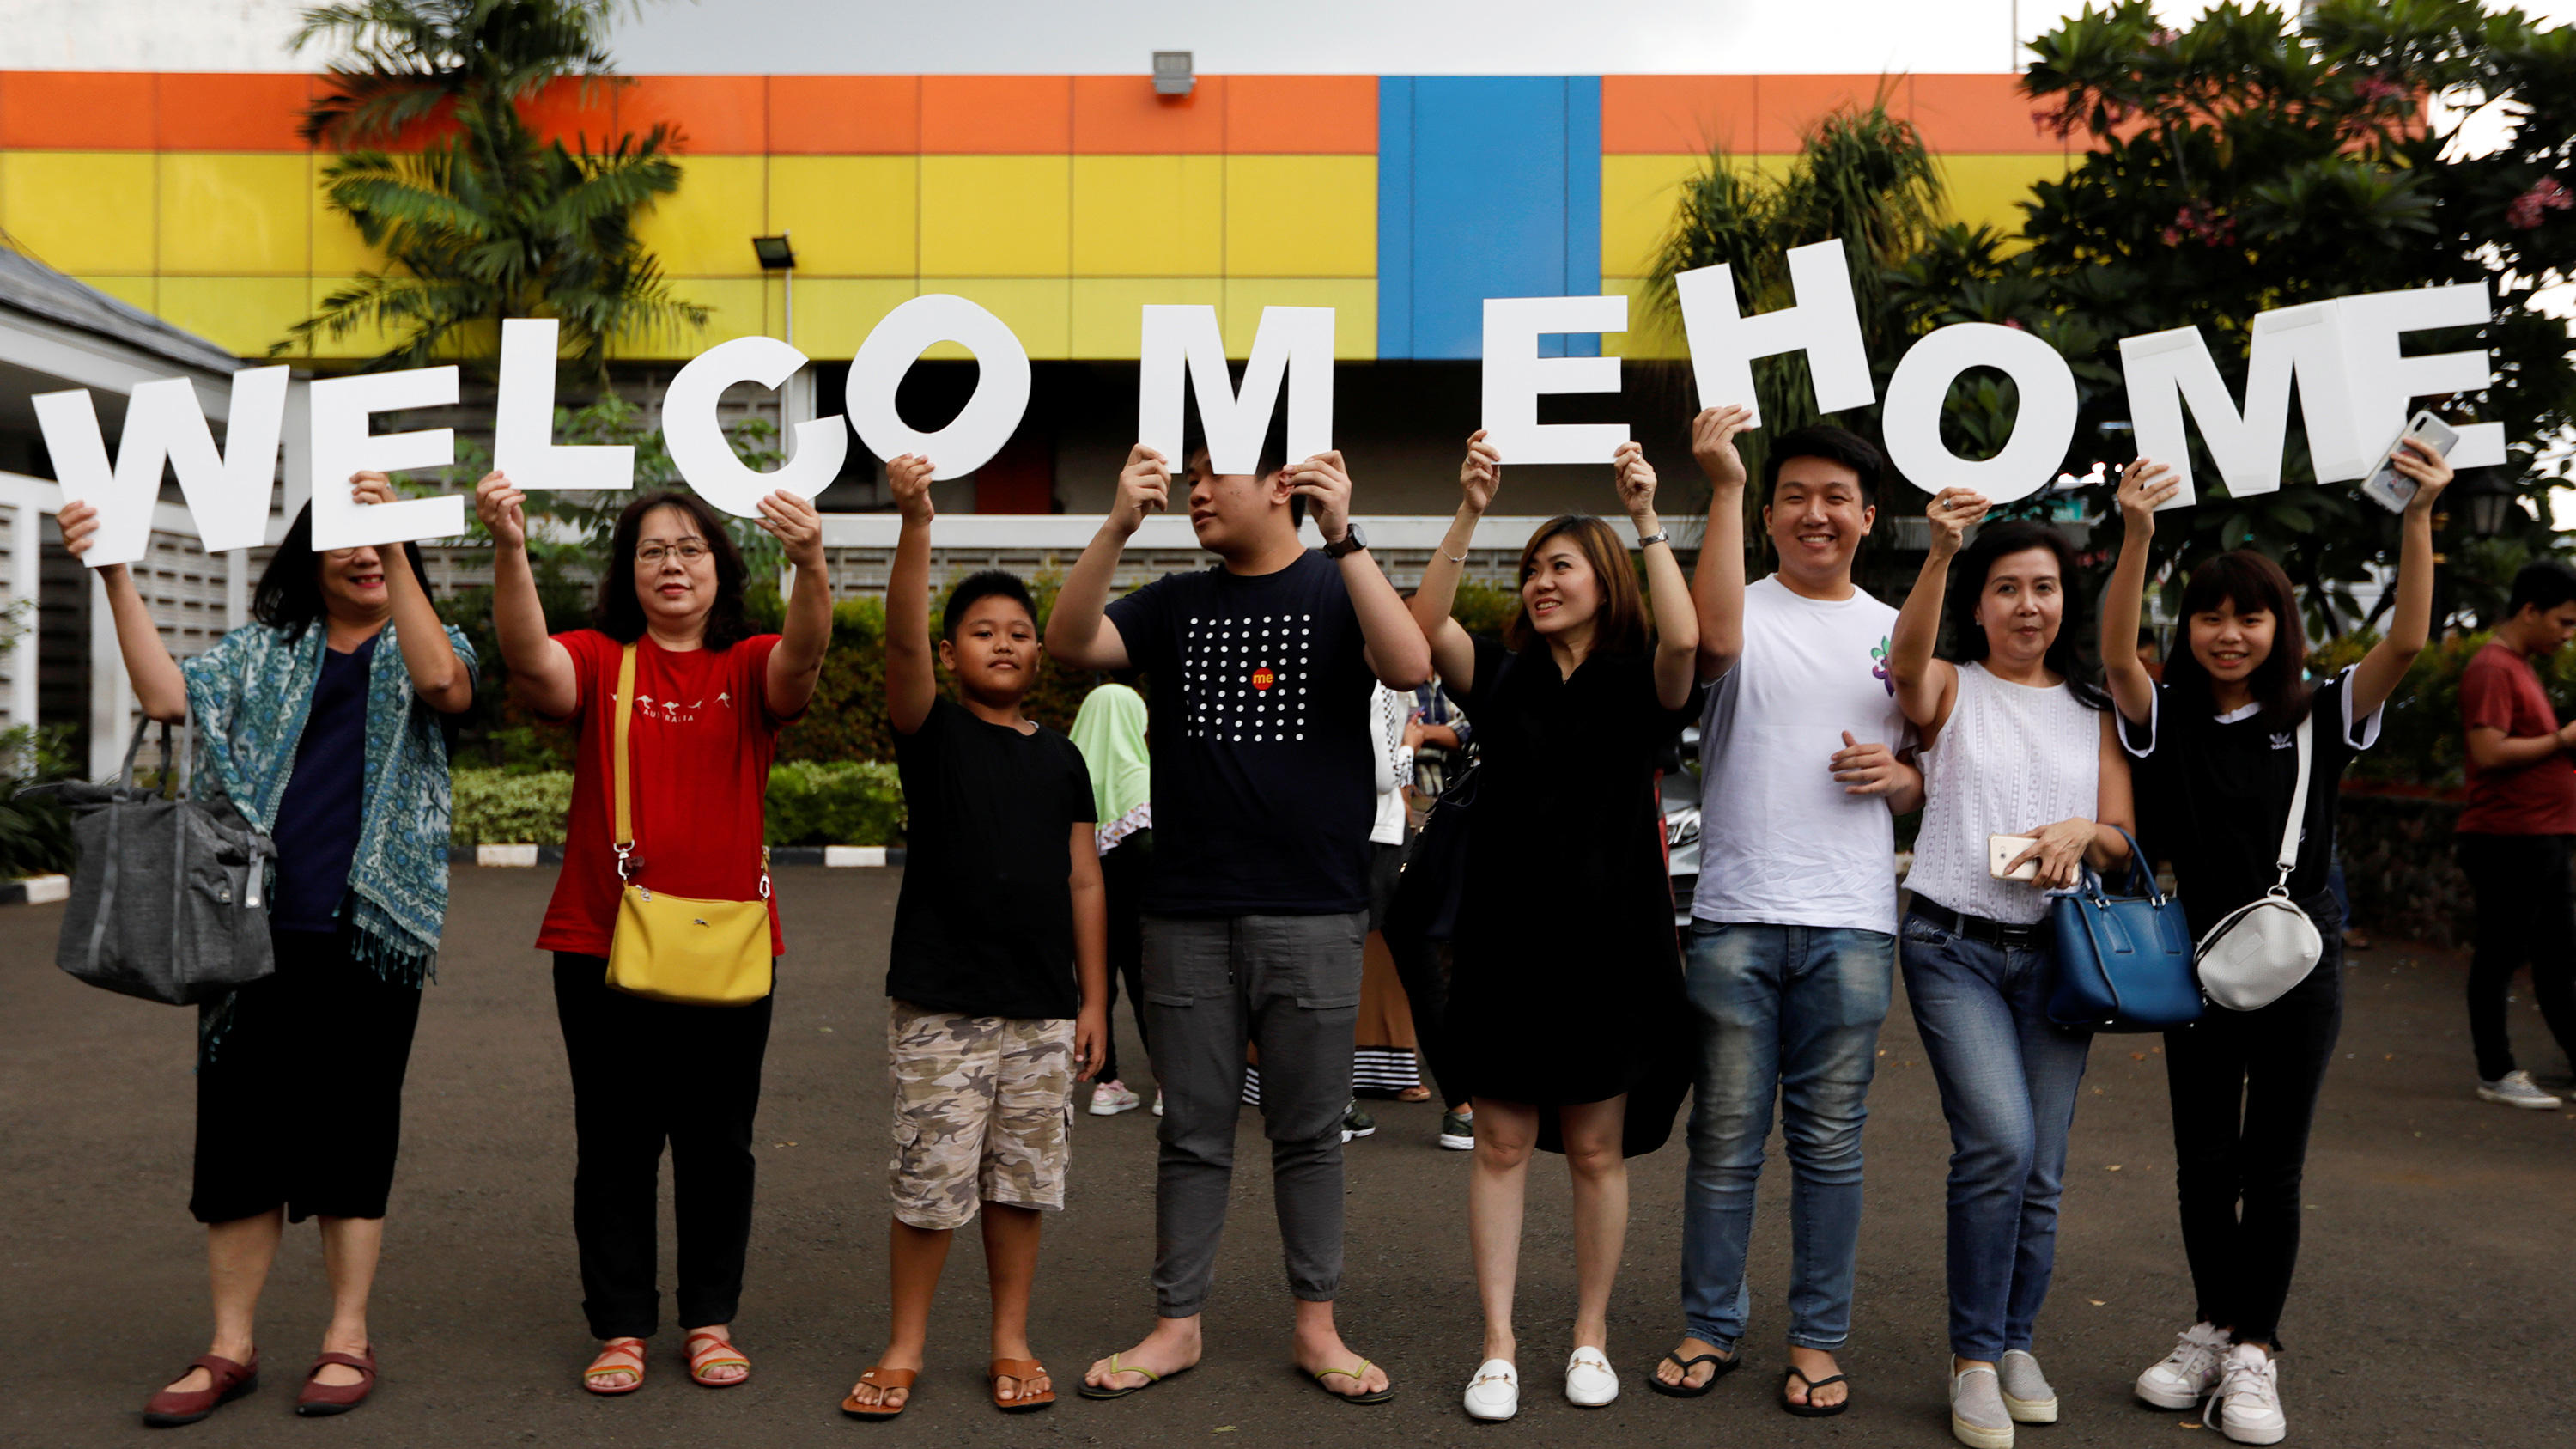 This is a fun photo of a large extended family standing in a parking lot holding a sign that reade welcome home.